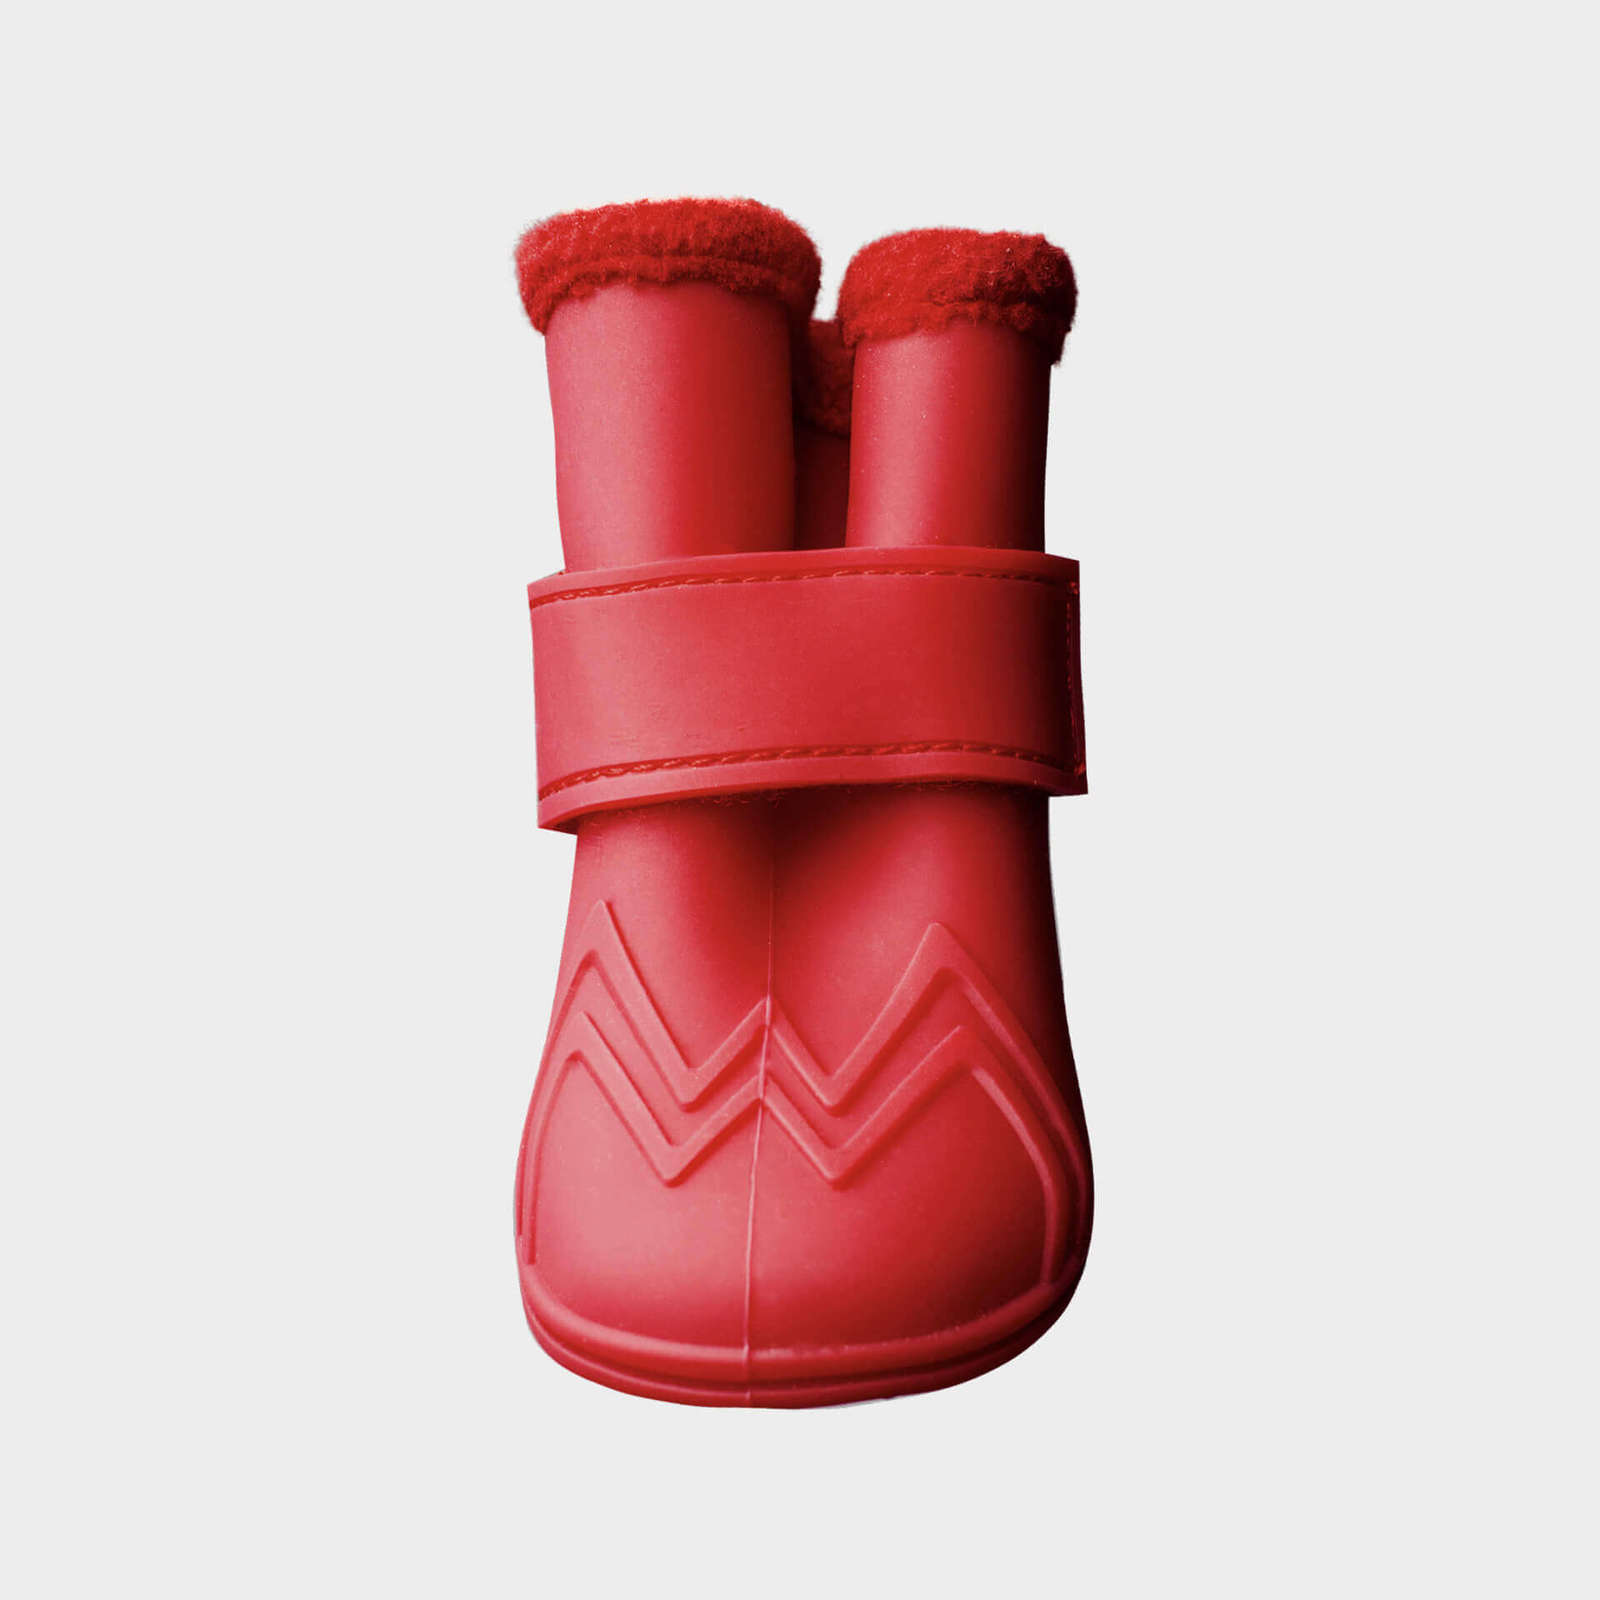 canada-pooch-wellies-dog-boot-red-lined-off-figure-color_67